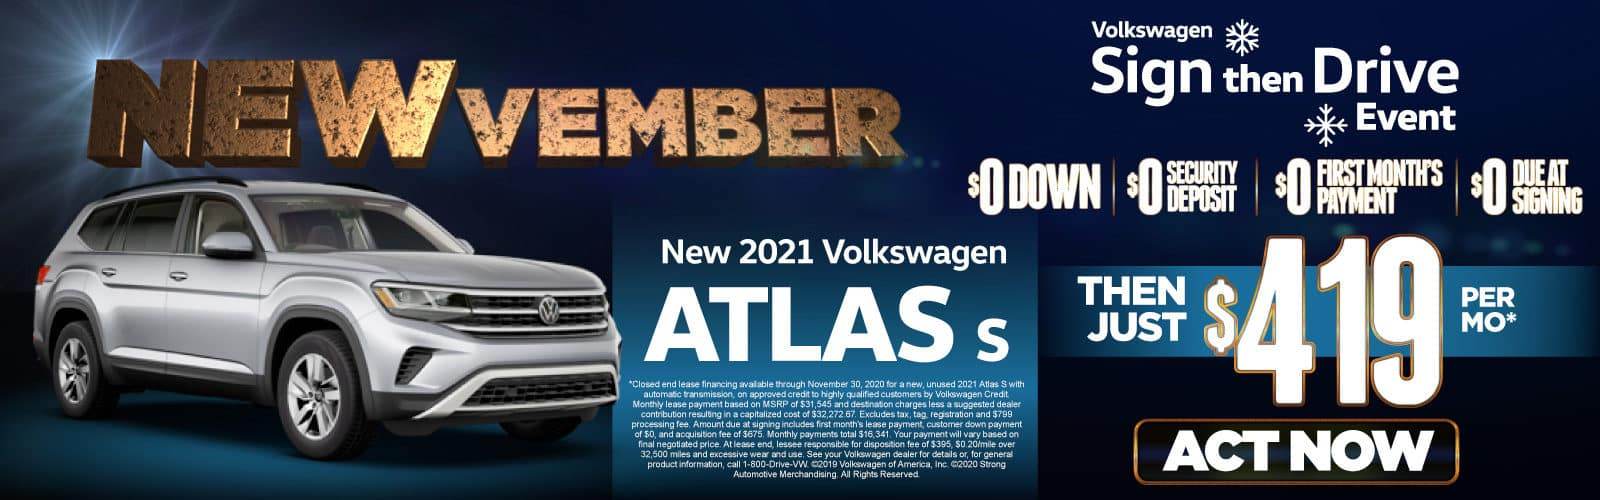 New 2021 VW Atlas - Only $419 a month - Act Now